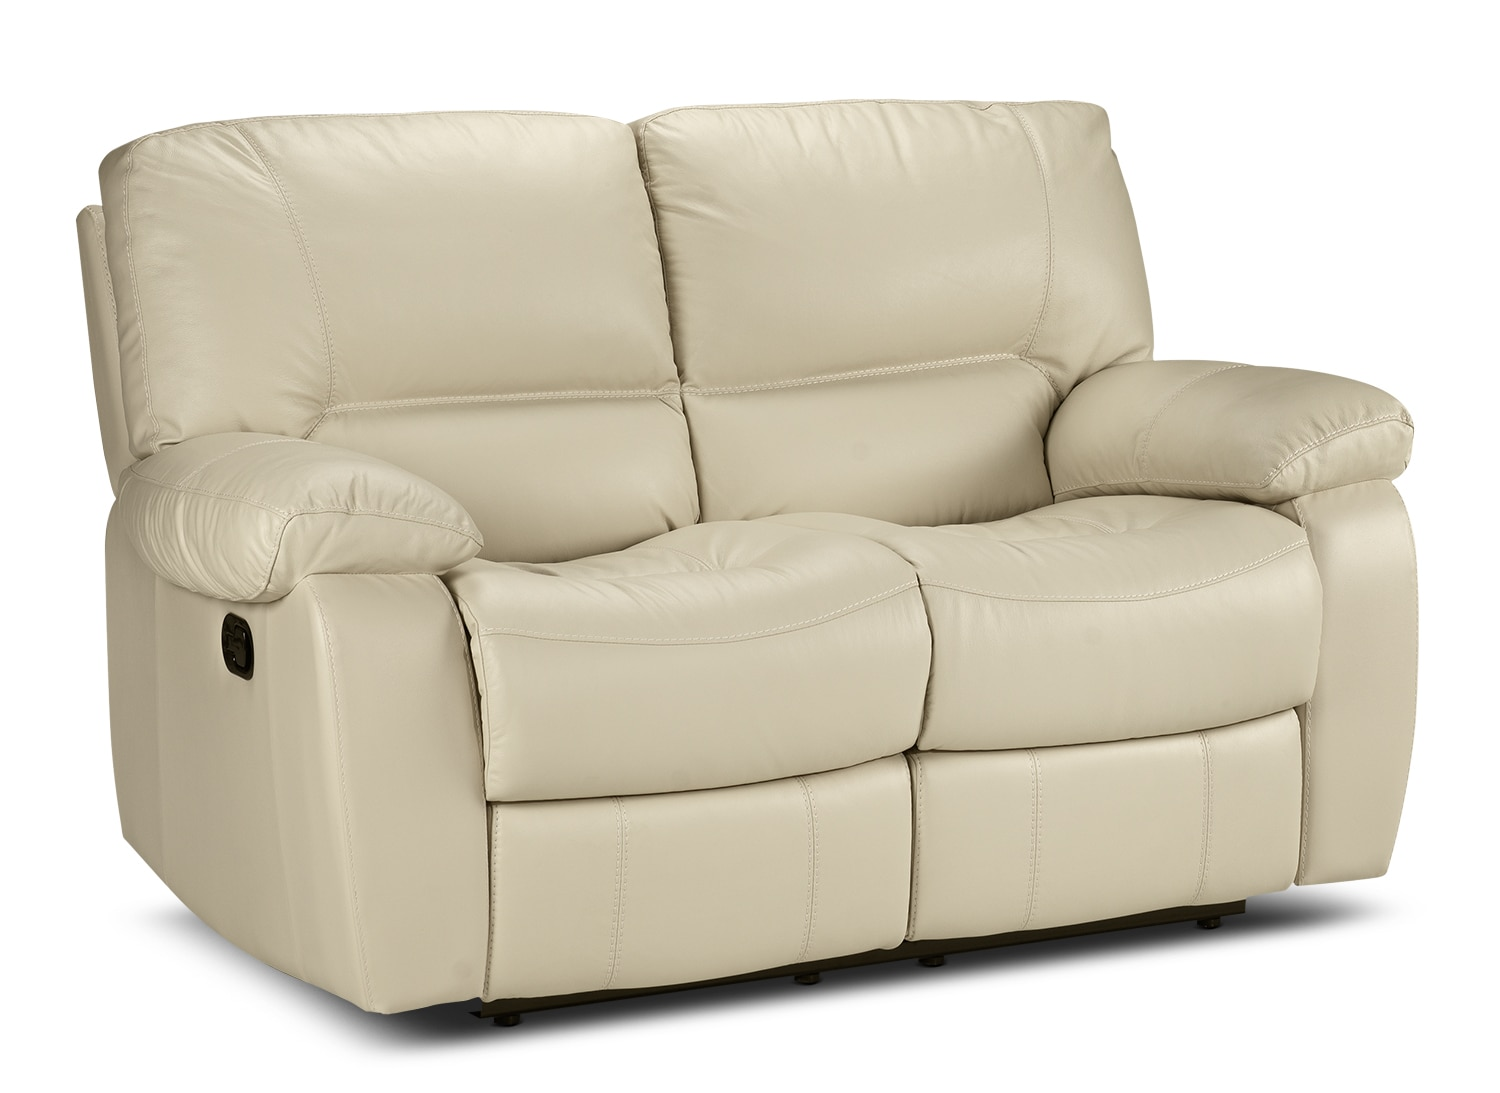 Living Room Furniture - Piermont Reclining Loveseat - Bisque